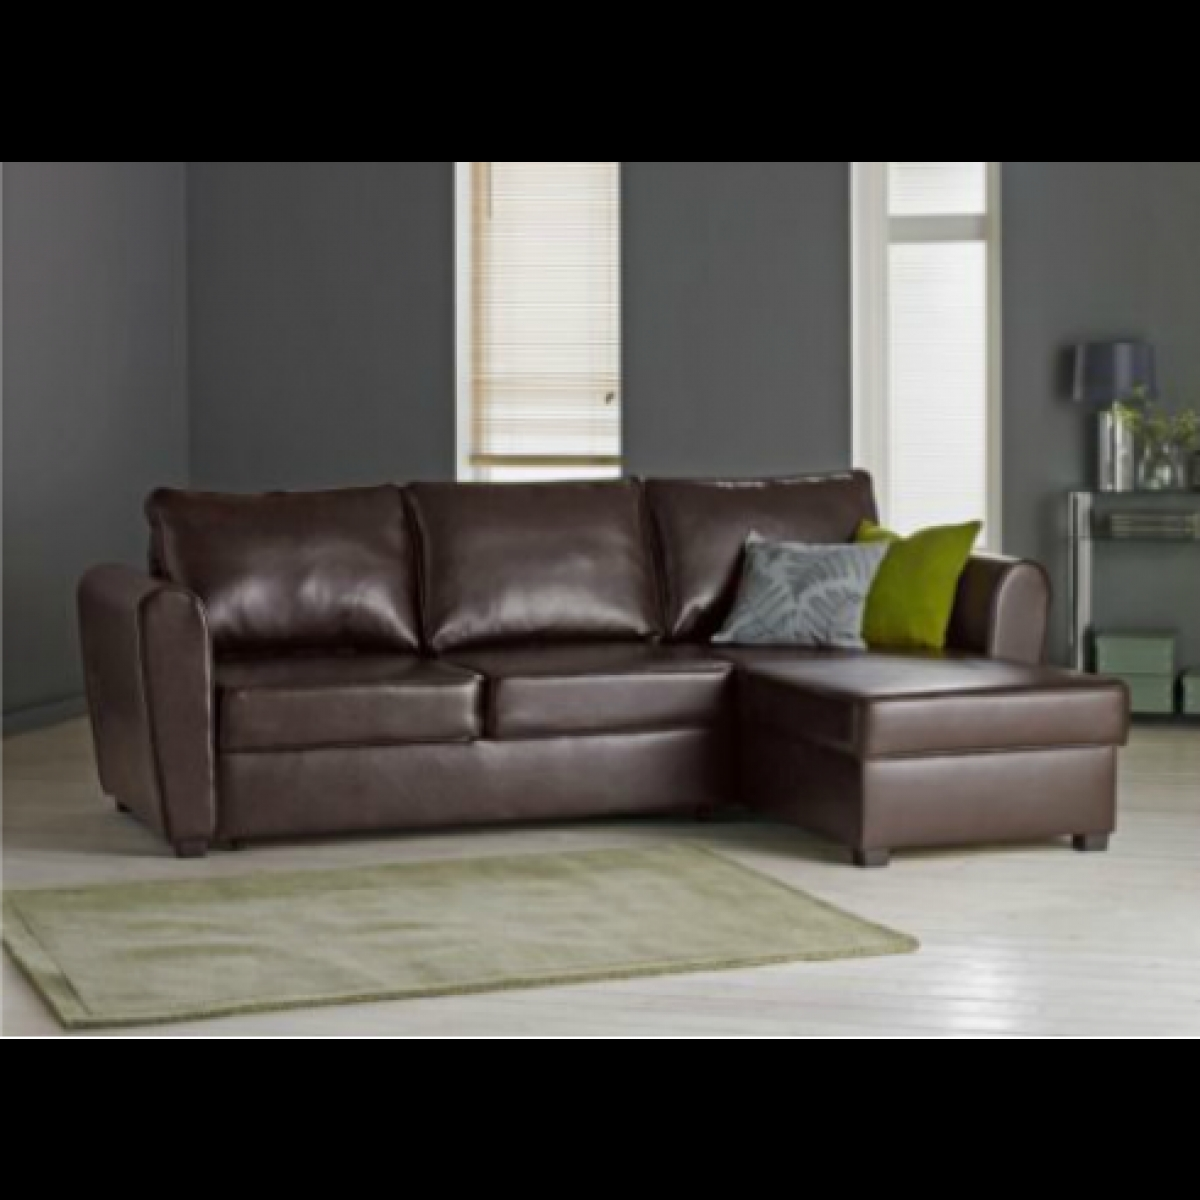 Featured Image of Fabric Corner Sofa Bed